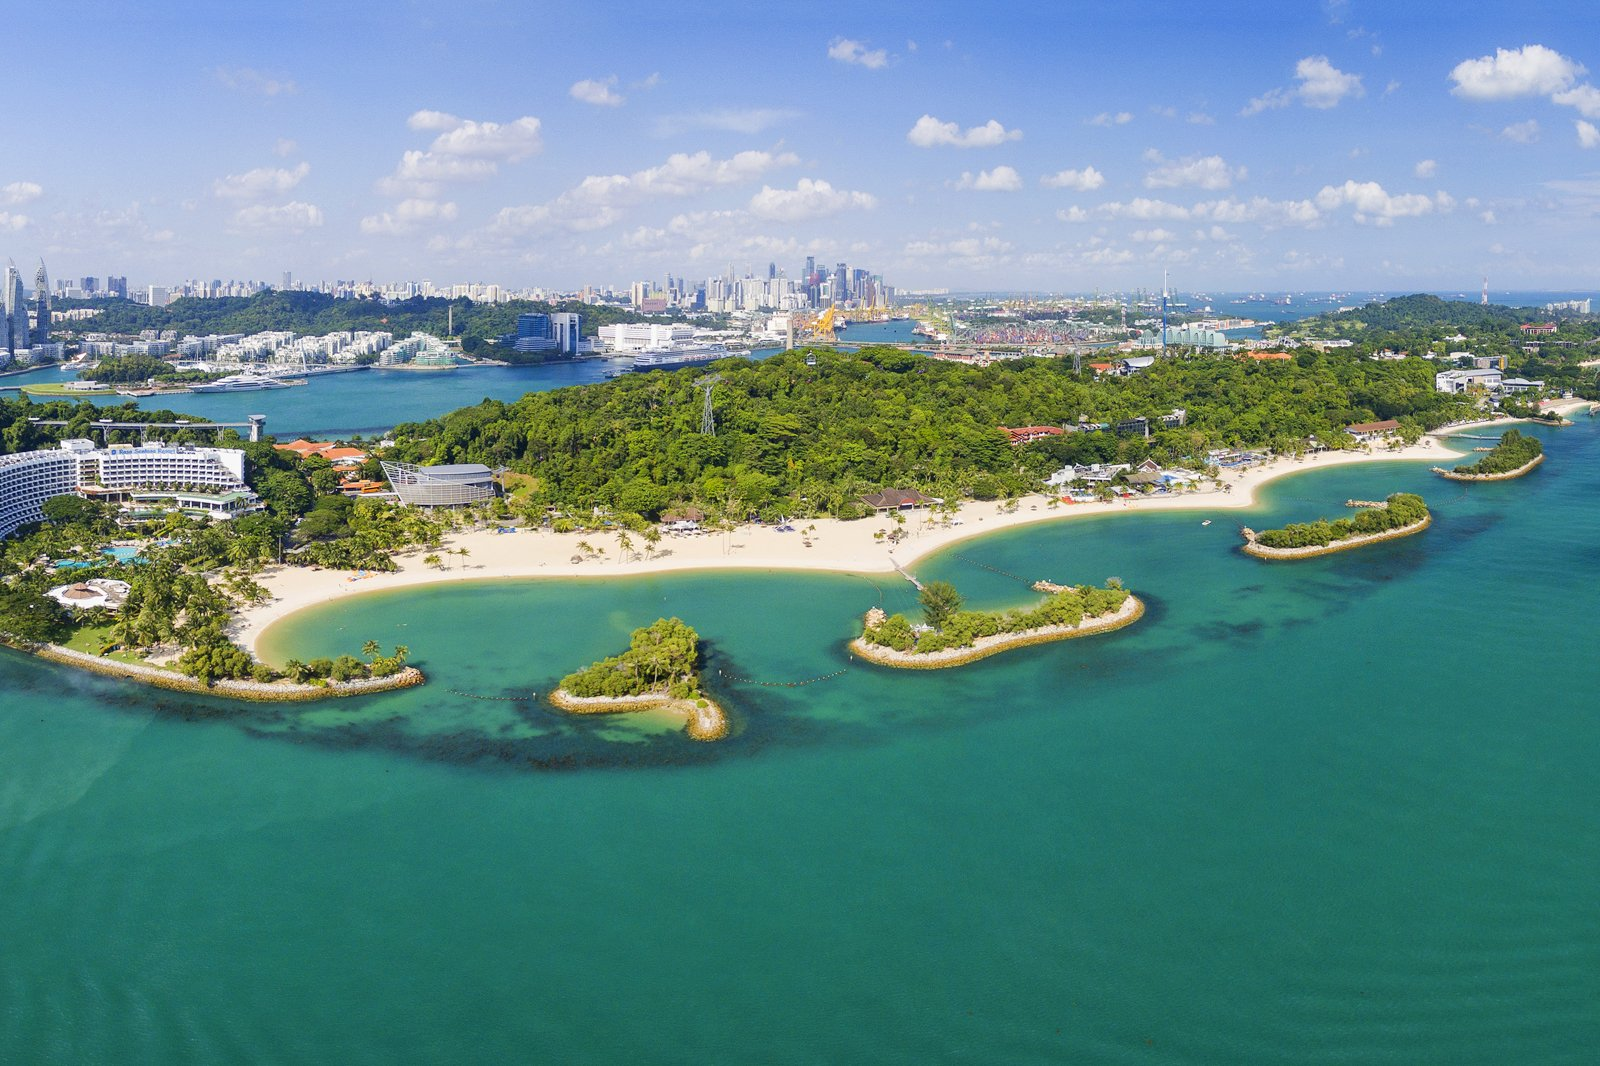 5 Islands near Singapore - Singapore's Best Island Escapes